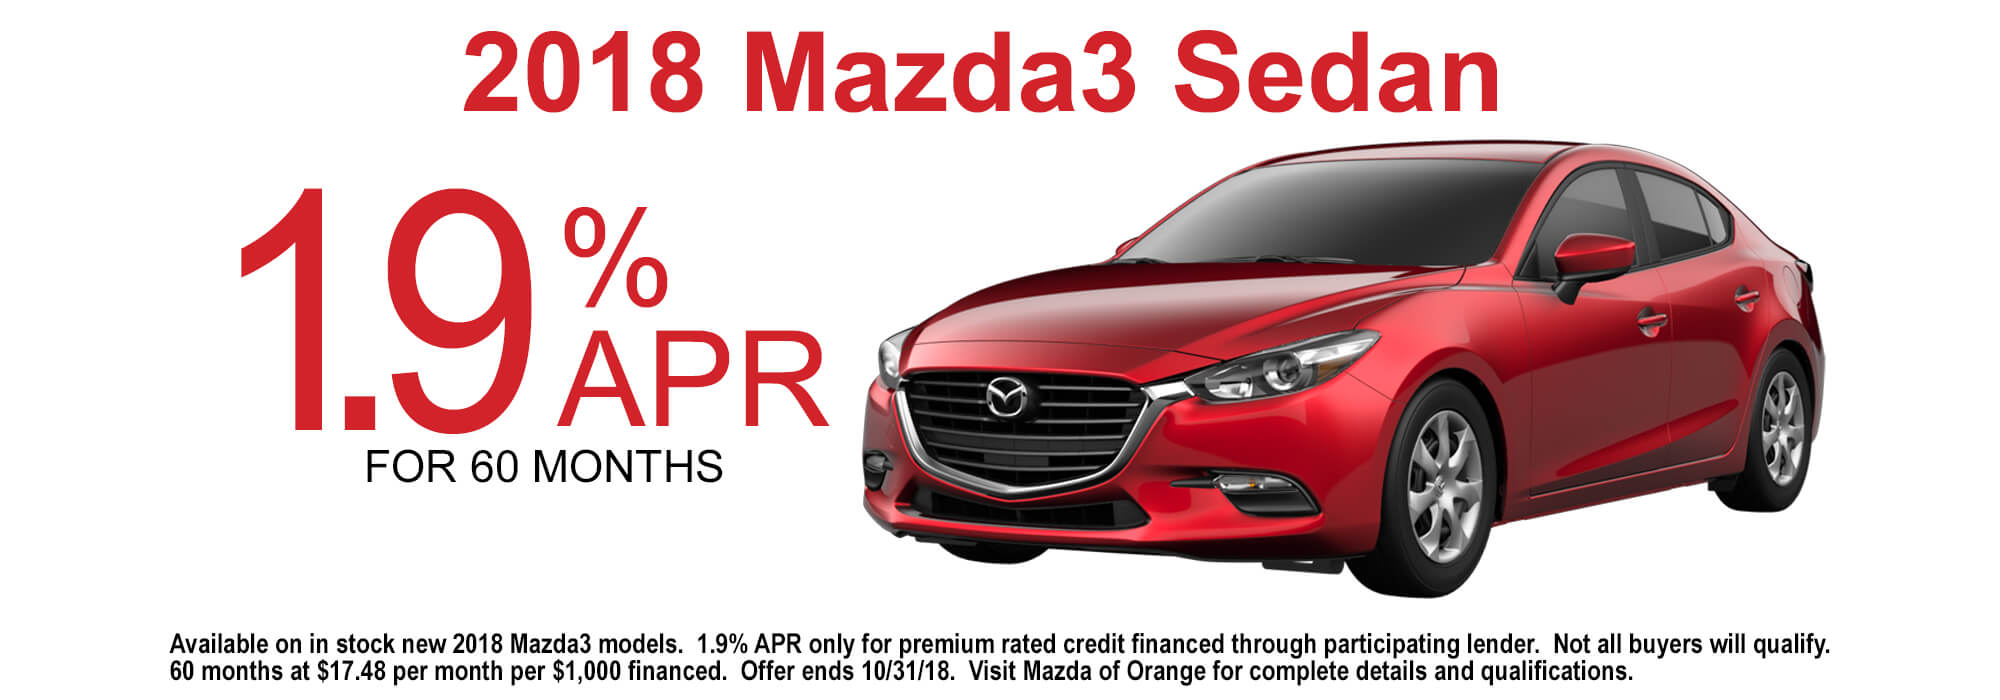 Great 2018 Mazda3 Sedan APR Special Offer Sales Event ...